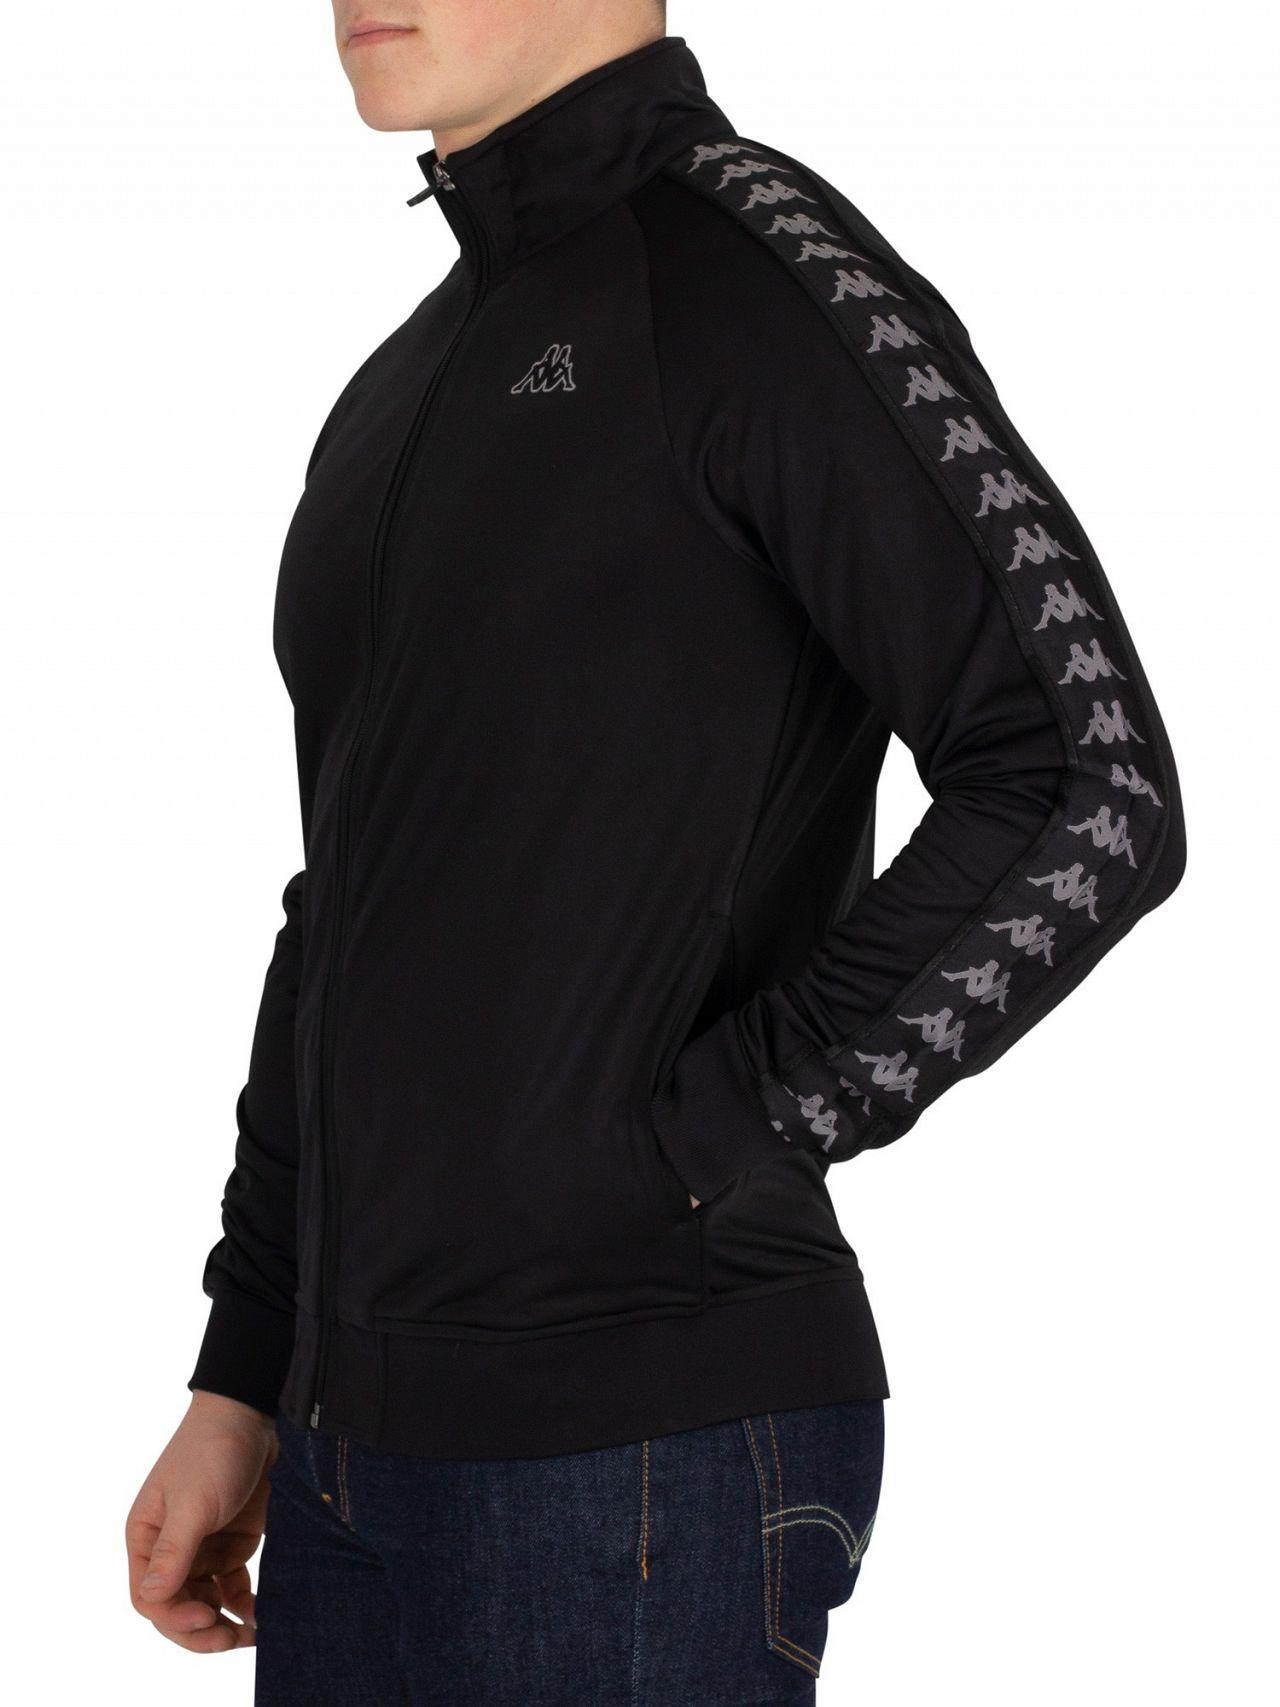 8009592ea8 Kappa Synthetic Black/grey Anniston 222 Banda Slim Fit Track Jacket ...